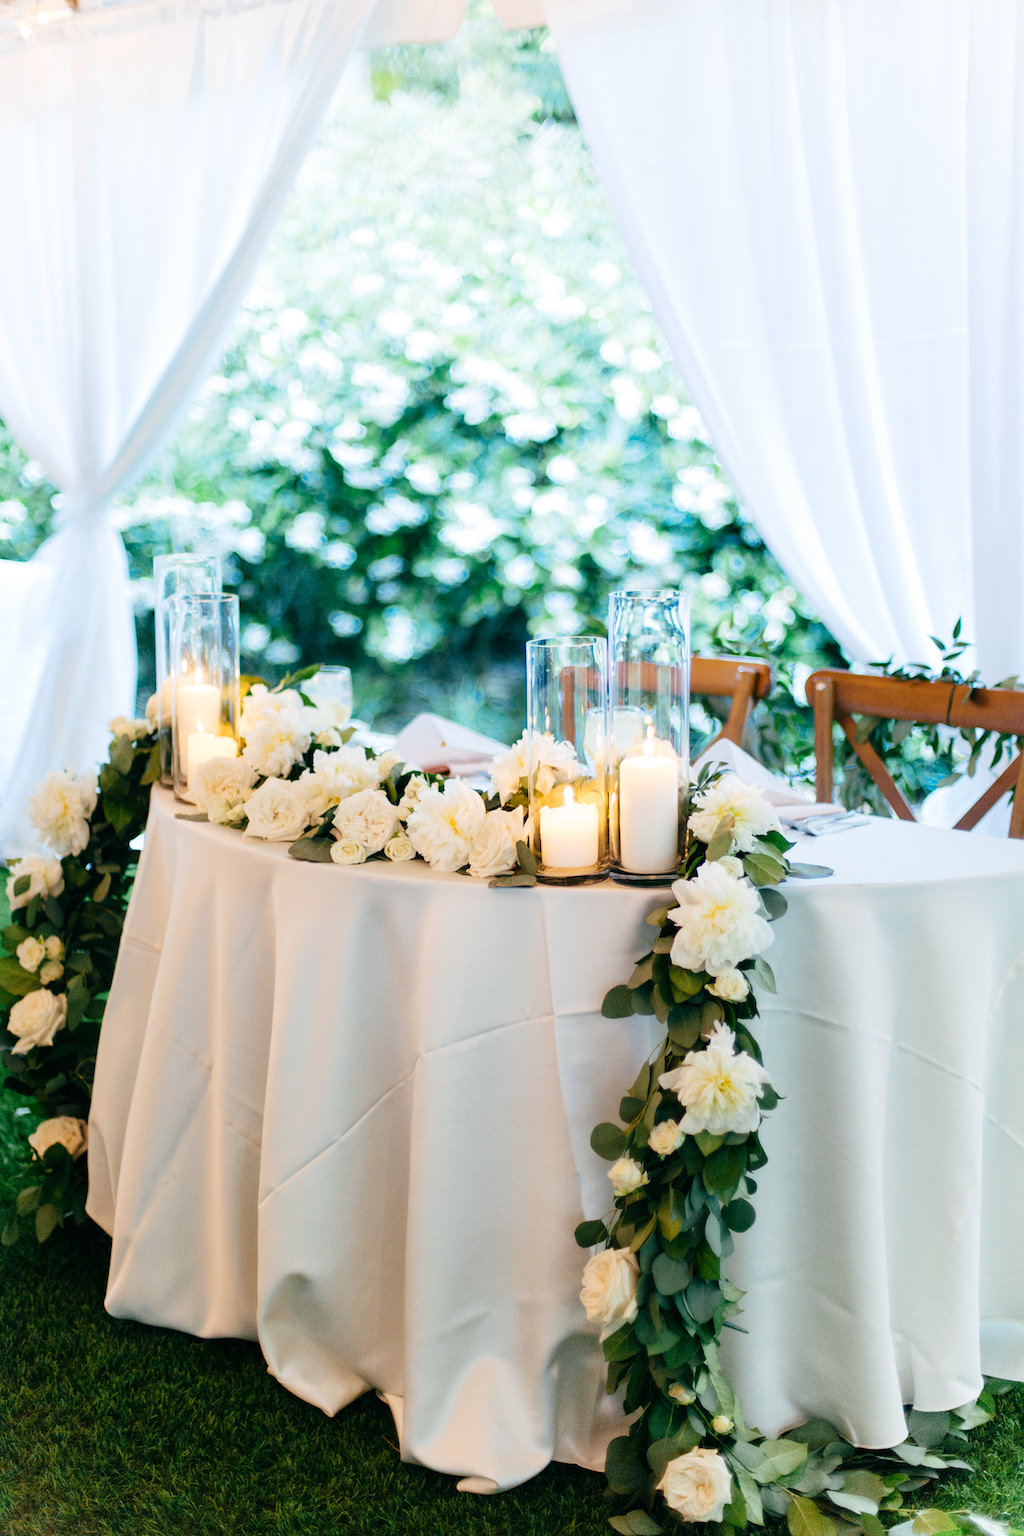 Elegant, Simple, Classic Garden Tent Wedding Reception Decor, Sweetheart Table with White Linen, Wooden Crossback Chairs, Greenery Garland with White and Ivory Florals, Hurricane Glass Candlesticks | Tampa Bay Wedding Rentals Gabro Event Services